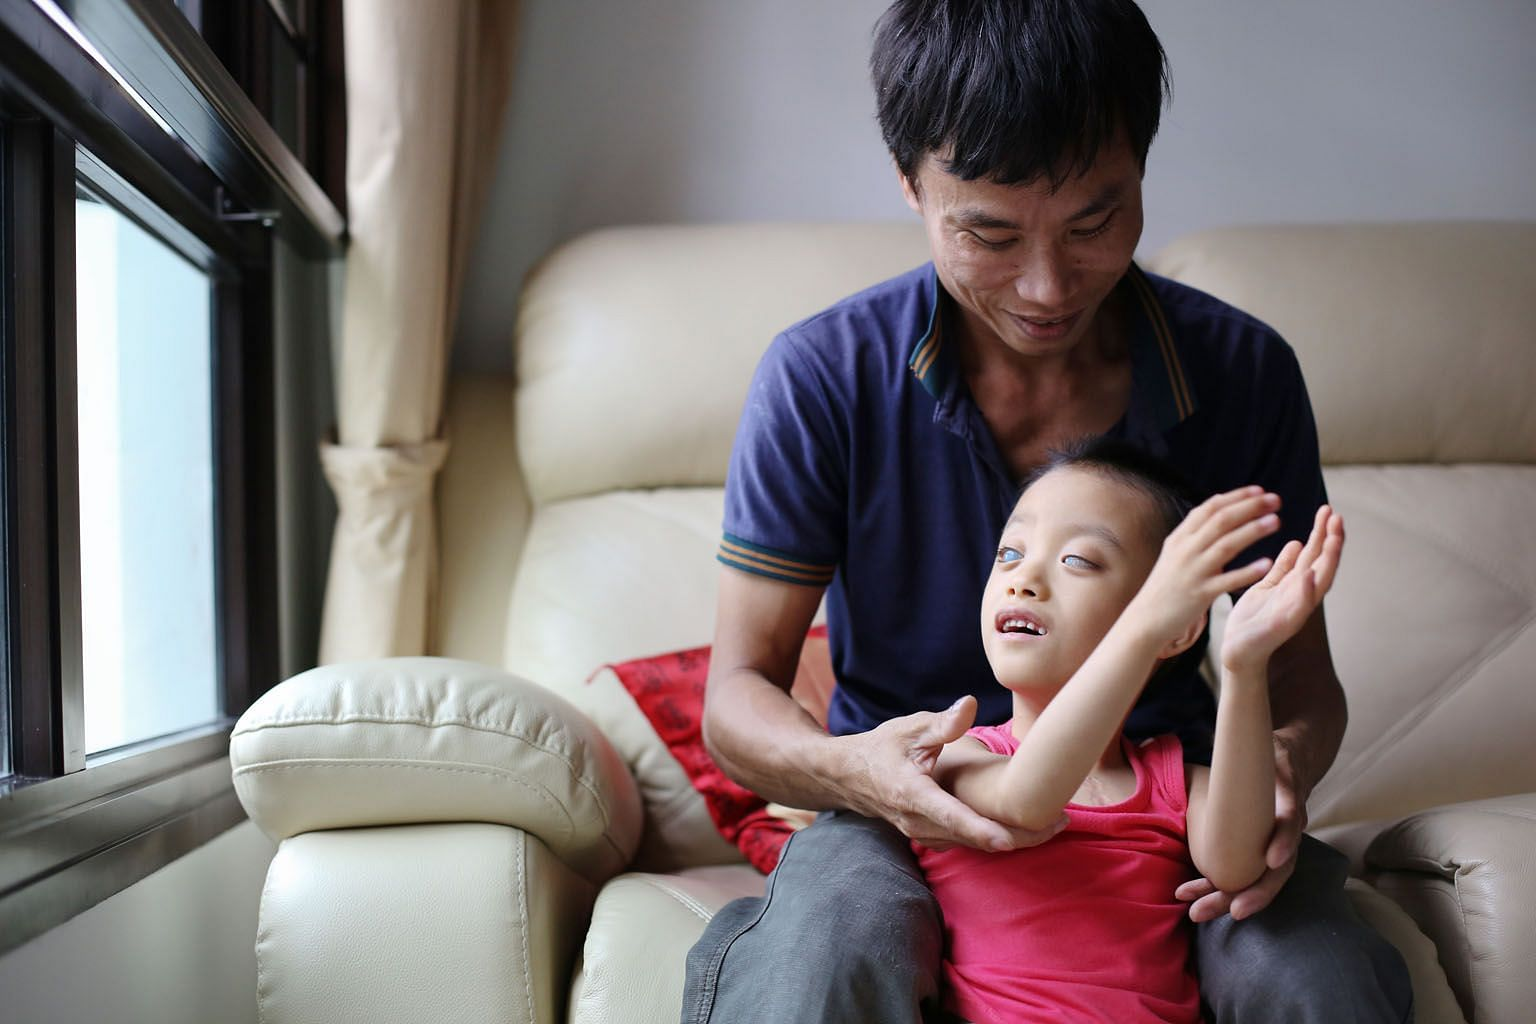 Mr Tran Ngoc Dung has been caring for his son, Tran Ngoc Chien, together with an elderly neighbour since his wife left the family when the boy was 17 months old. Chien suffers from corneal damage and glaucoma.